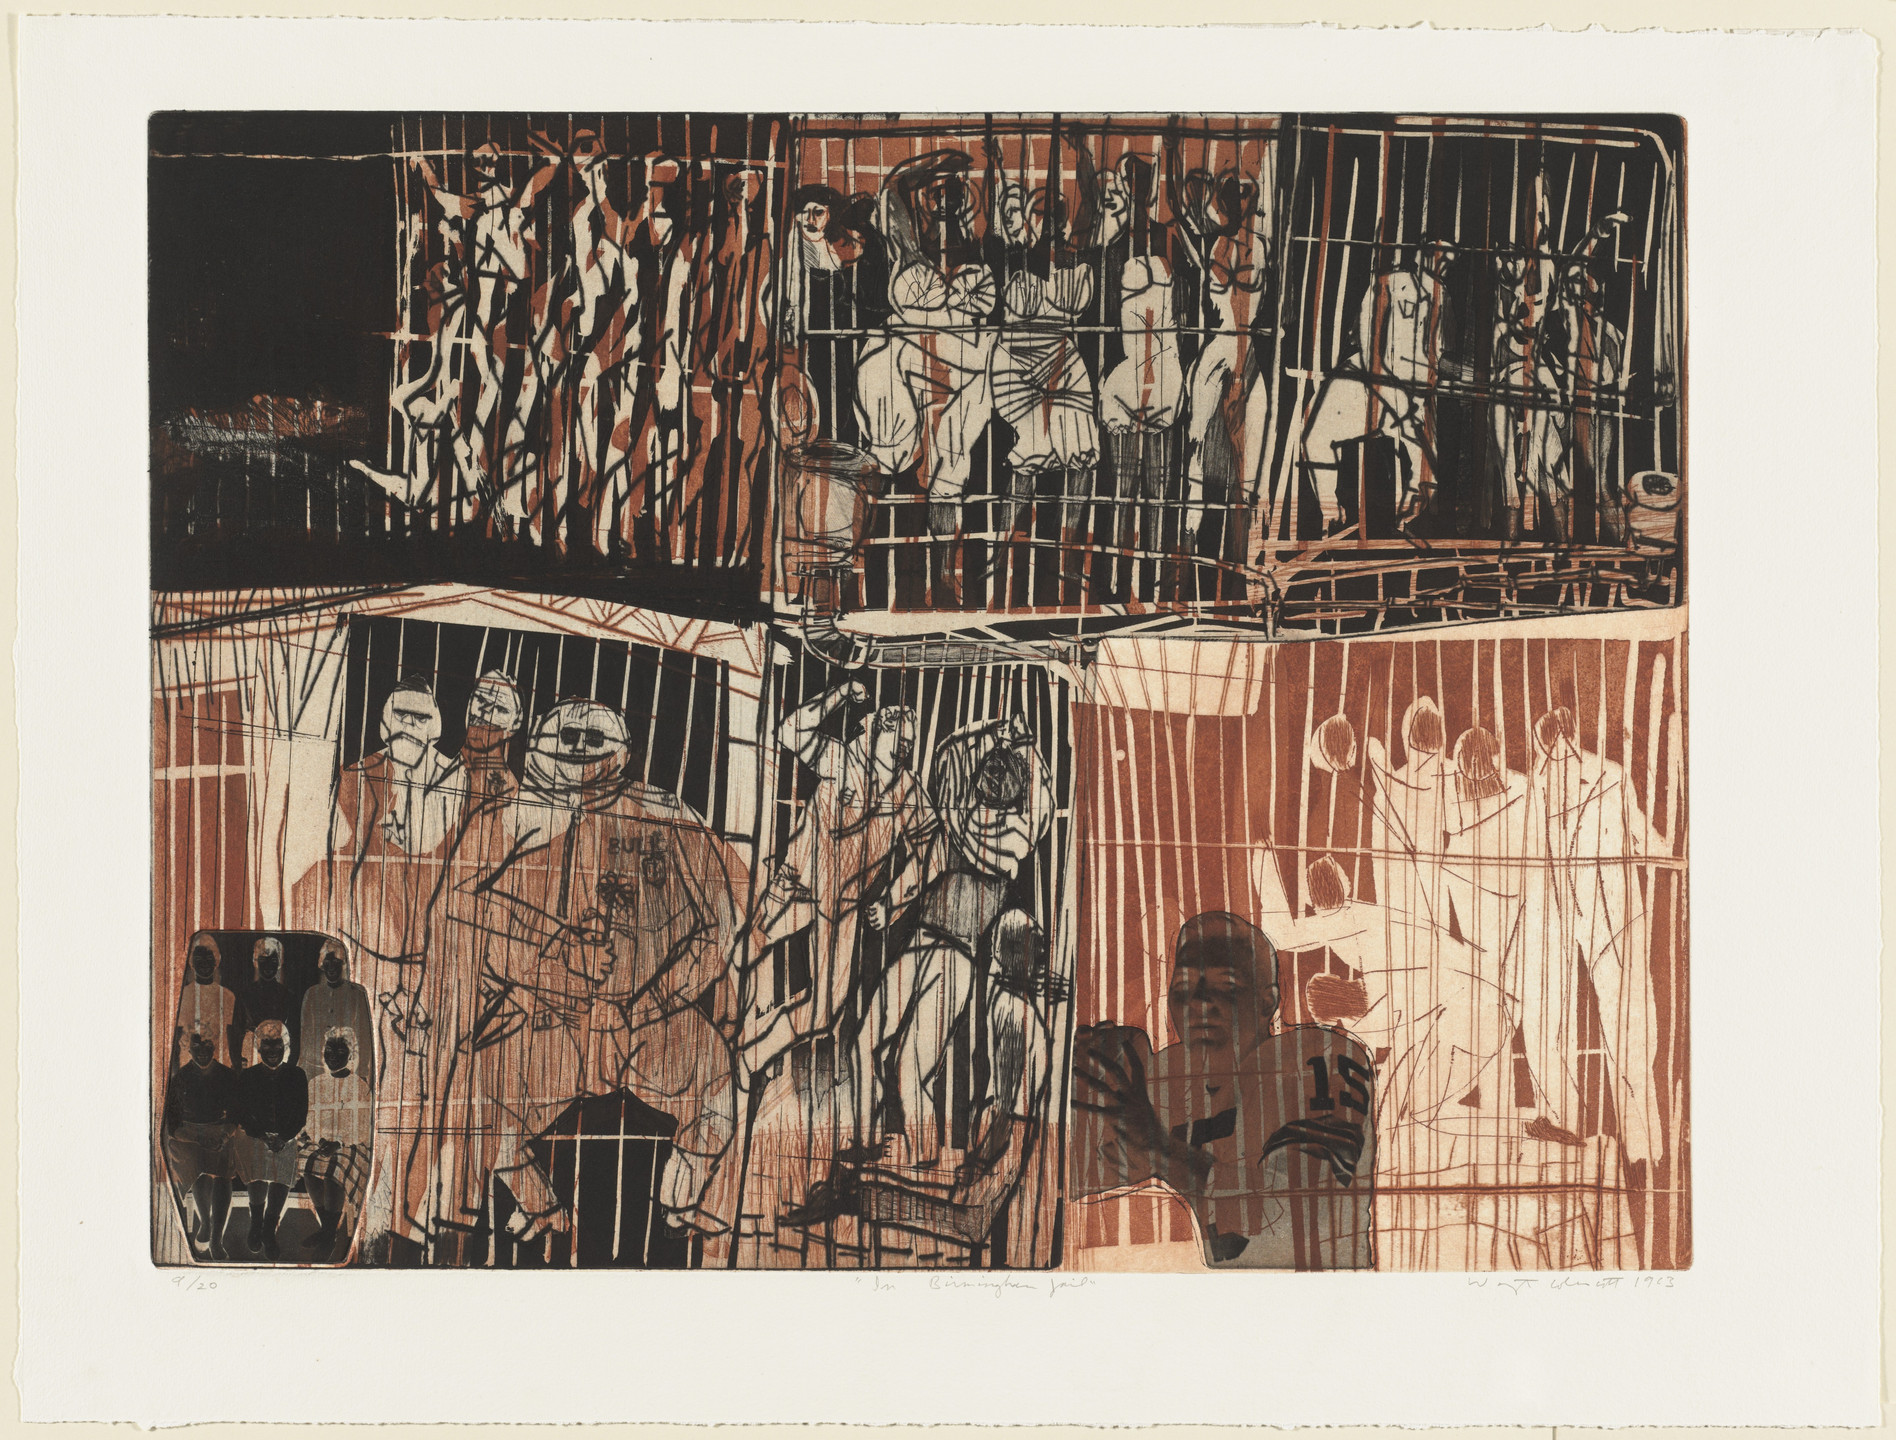 Warrington Colescott. In Birmingham Jail. 1963